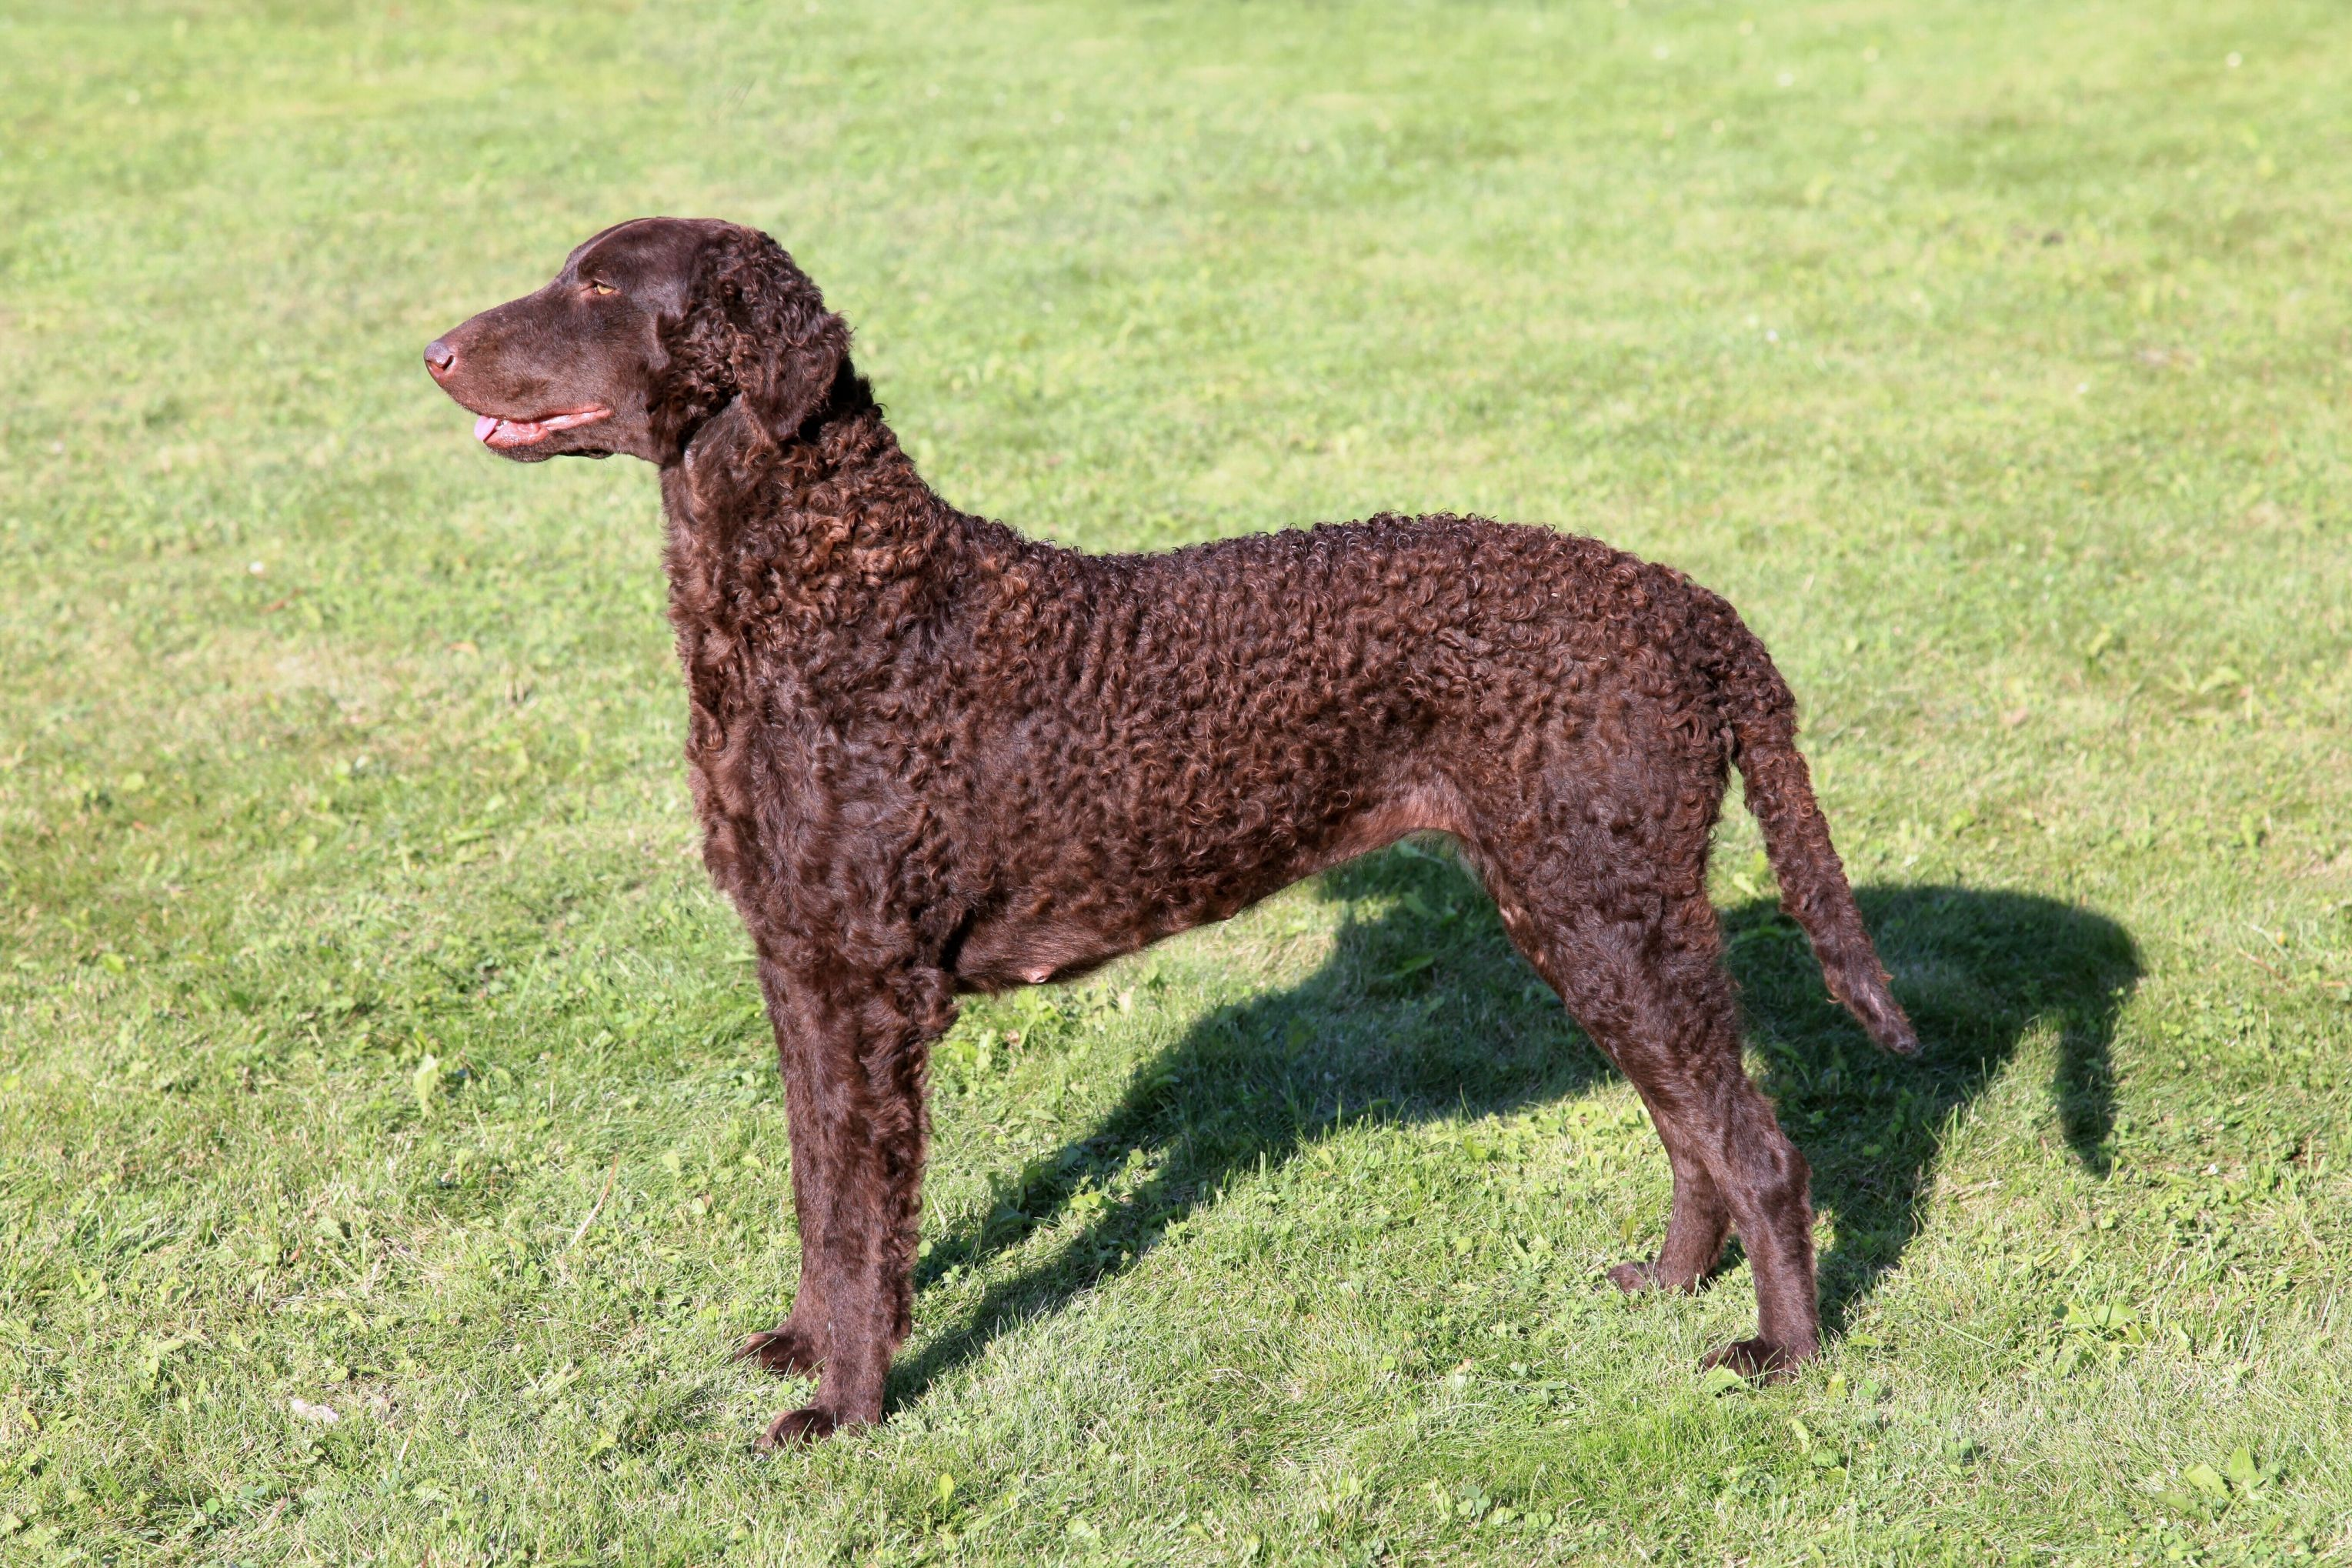 Pup Toys For Curly Coated Retriever Curly Coated Retriever Dog Breeds Puppies